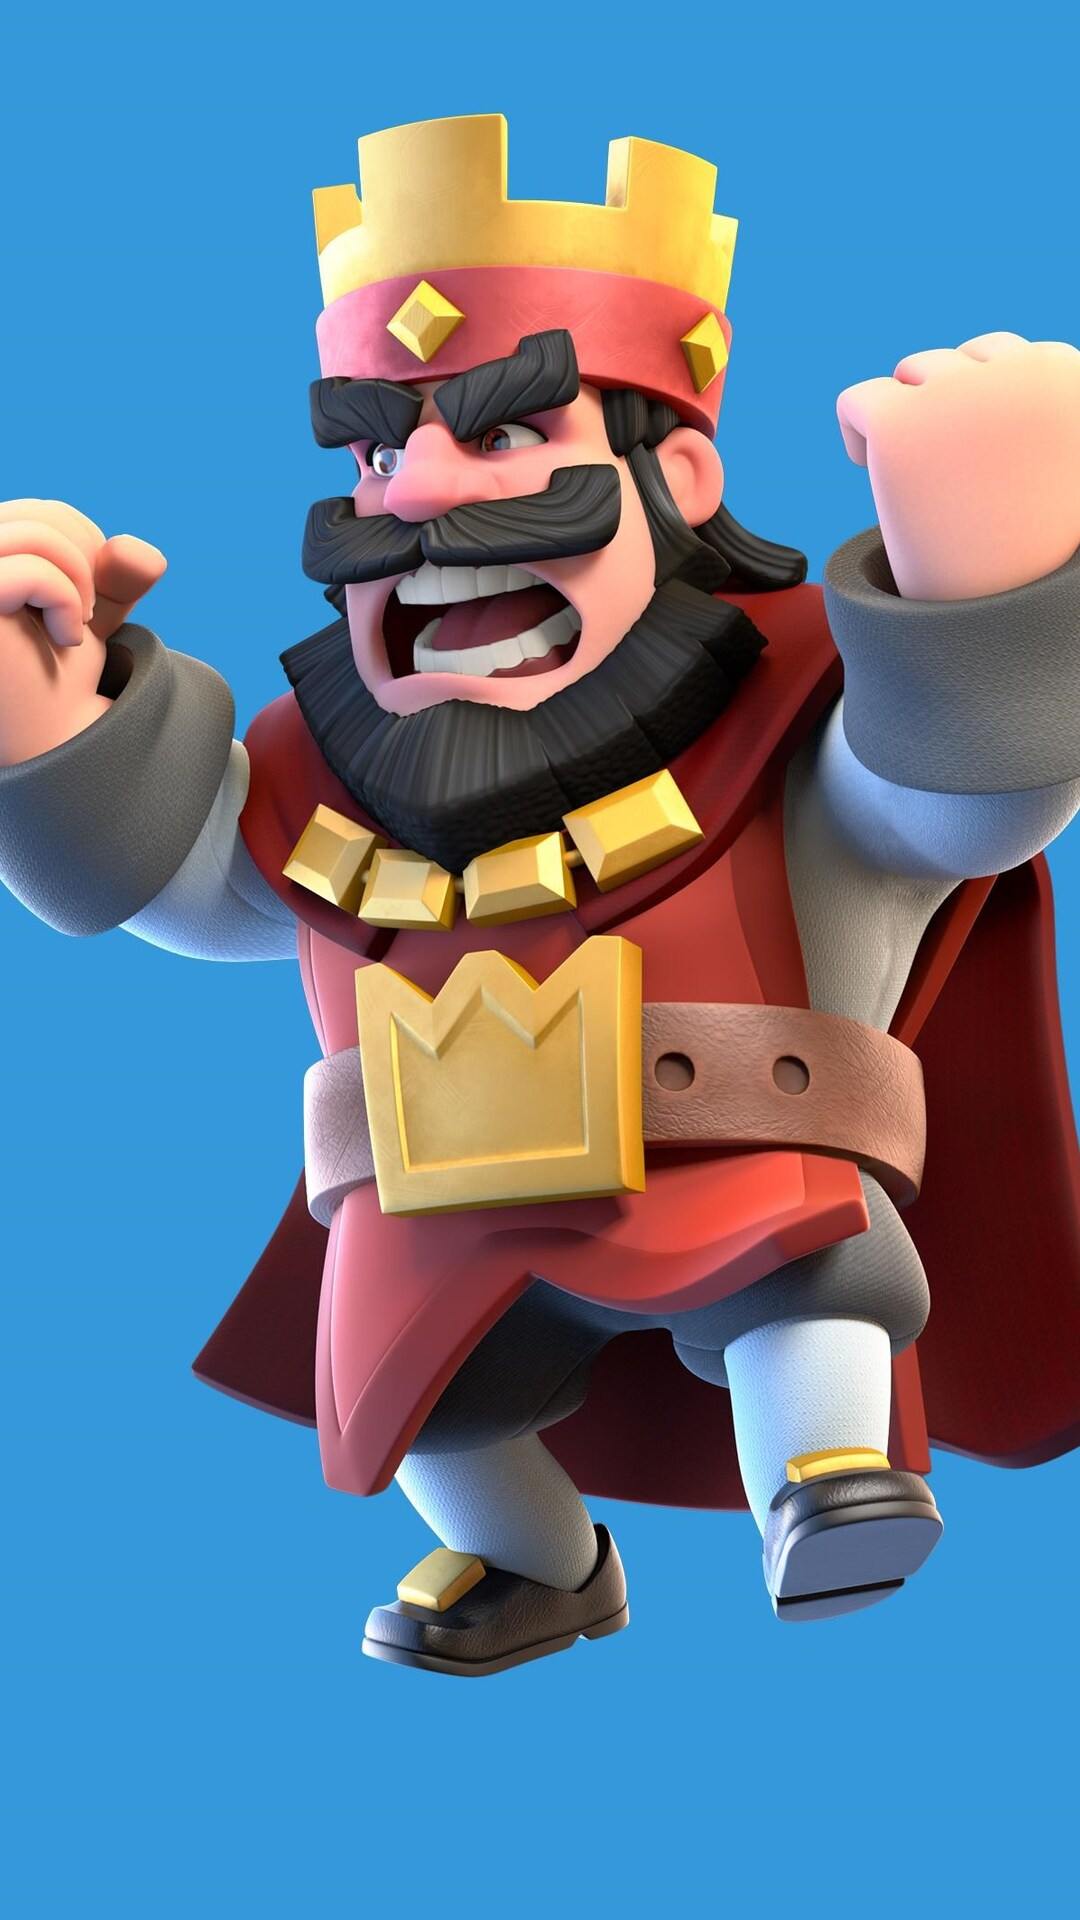 1080x1920 Clash Royale Red King Iphone 7,6s,6 Plus, Pixel